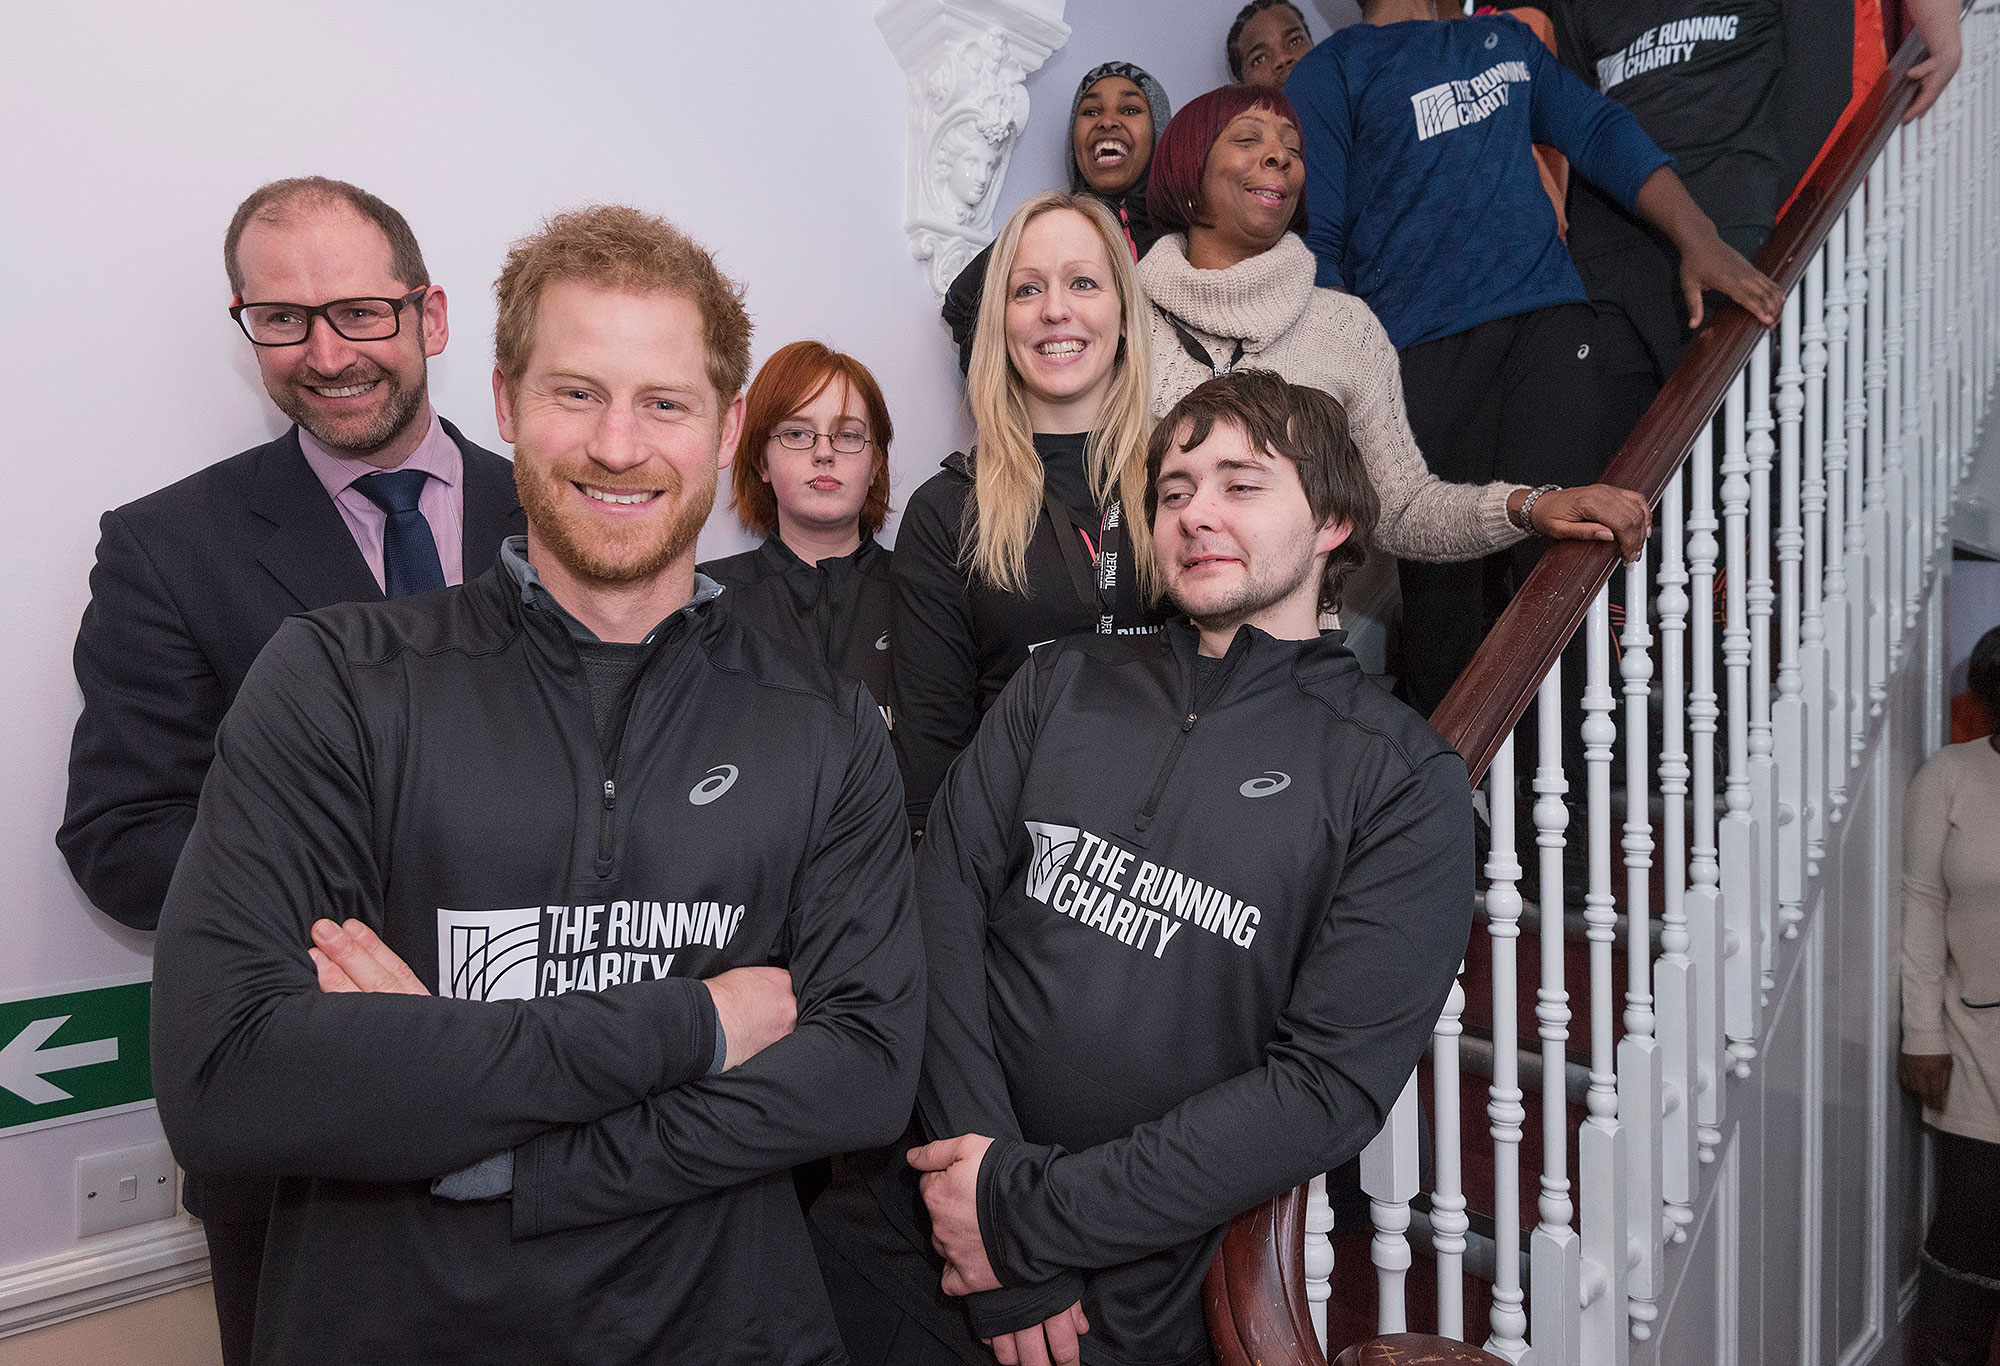 LONDON, UNITED KINGSDOM - JANUARY 26: Prince Harry recreates a picture taken of his mother Princess Diana, with staff and users with staff and users of The Running Charity, which is the UK's first running-orientated programme for homeless and vulnerable young people, on January 26, 2017 in Willesden, north west London, England. (Photo by Geoff Pugh-WPA Pool/Getty Images)